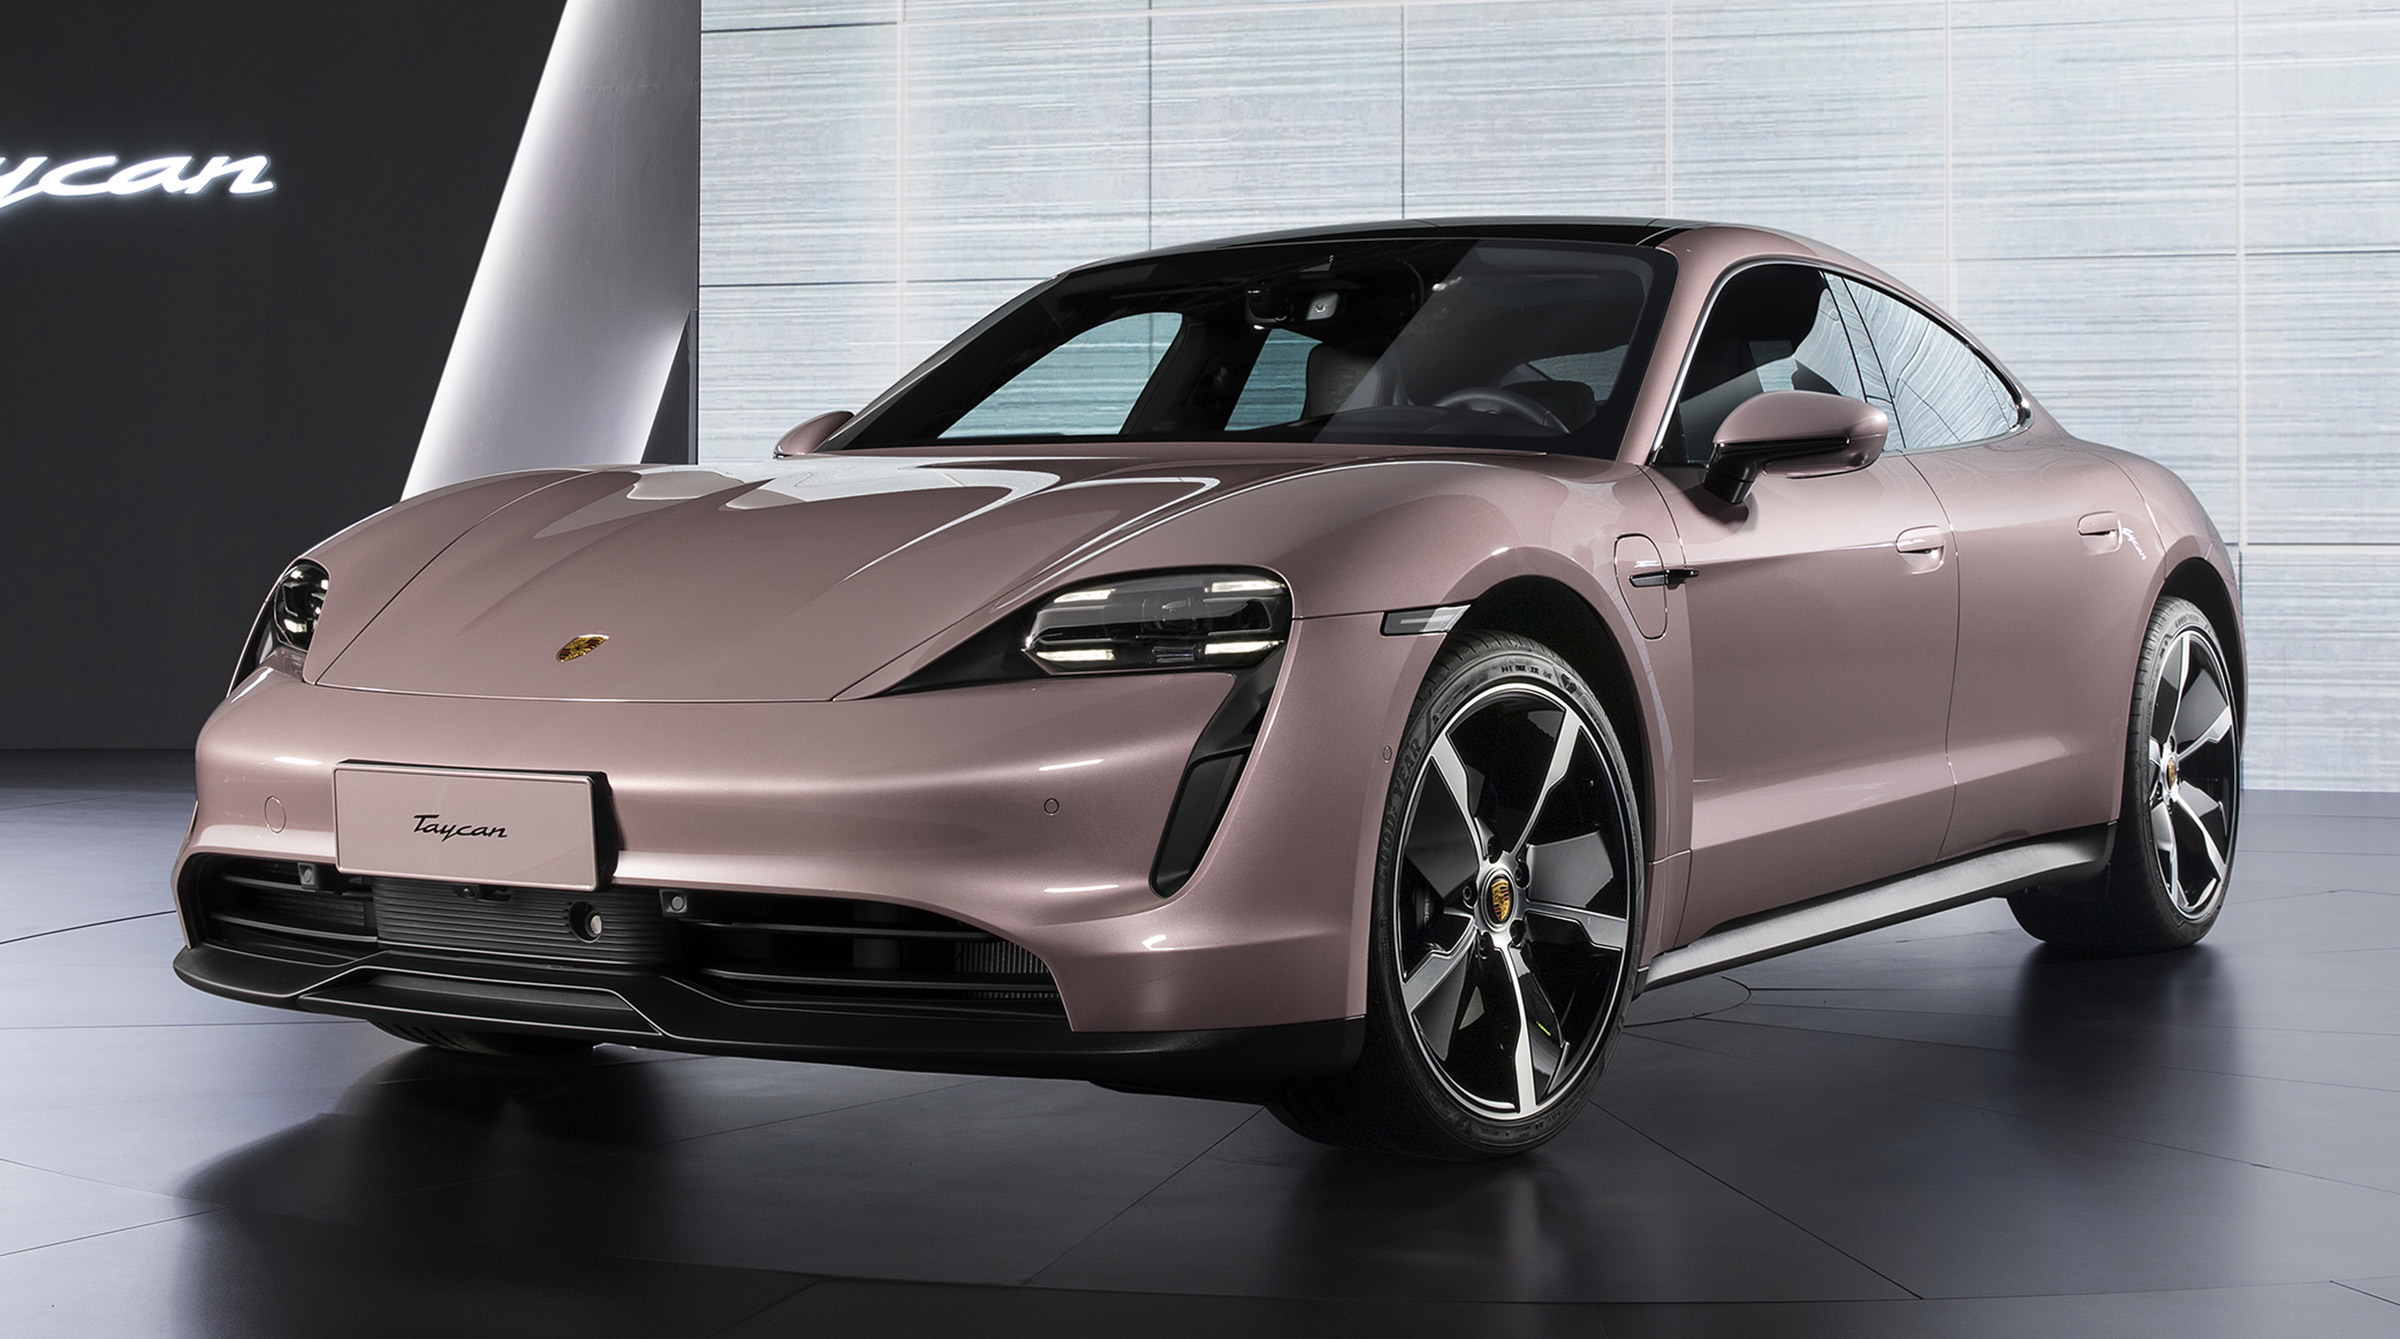 Porsche launches entry-level Taycan EV in South Africa